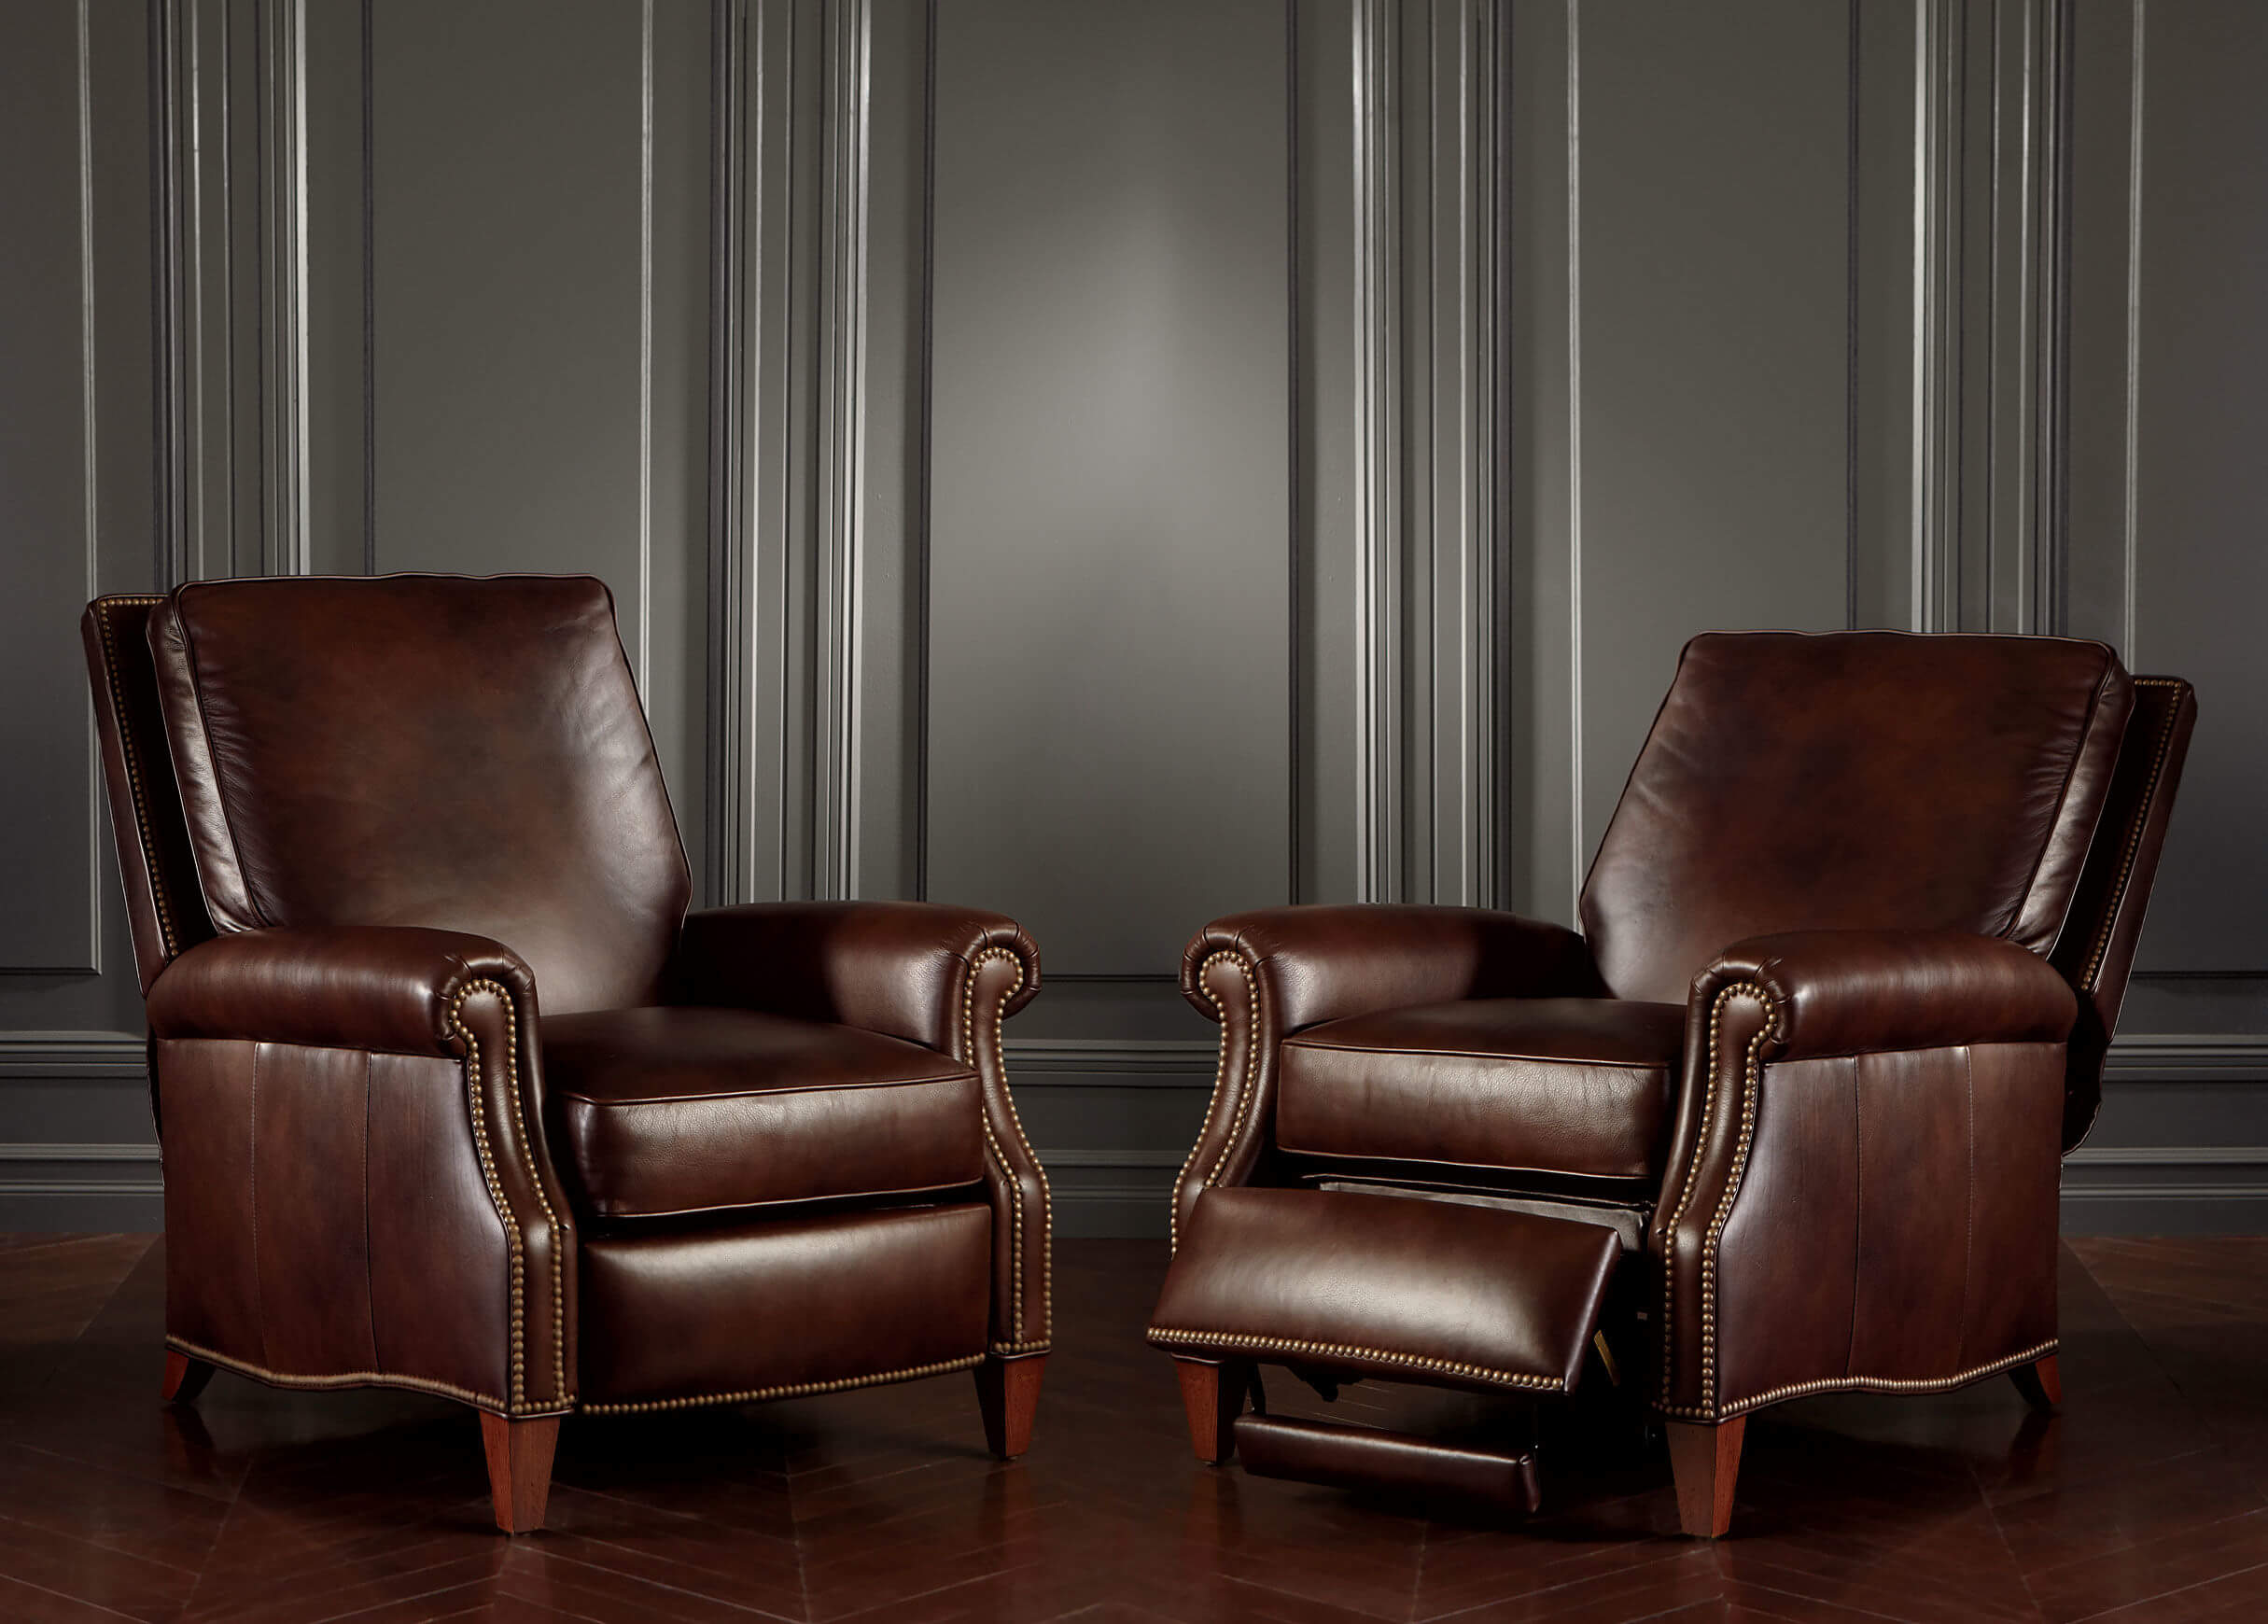 Discount Leather Chairs Top 8 Best Luxury Leather Arm Chair Recliners Sit In Style Improb